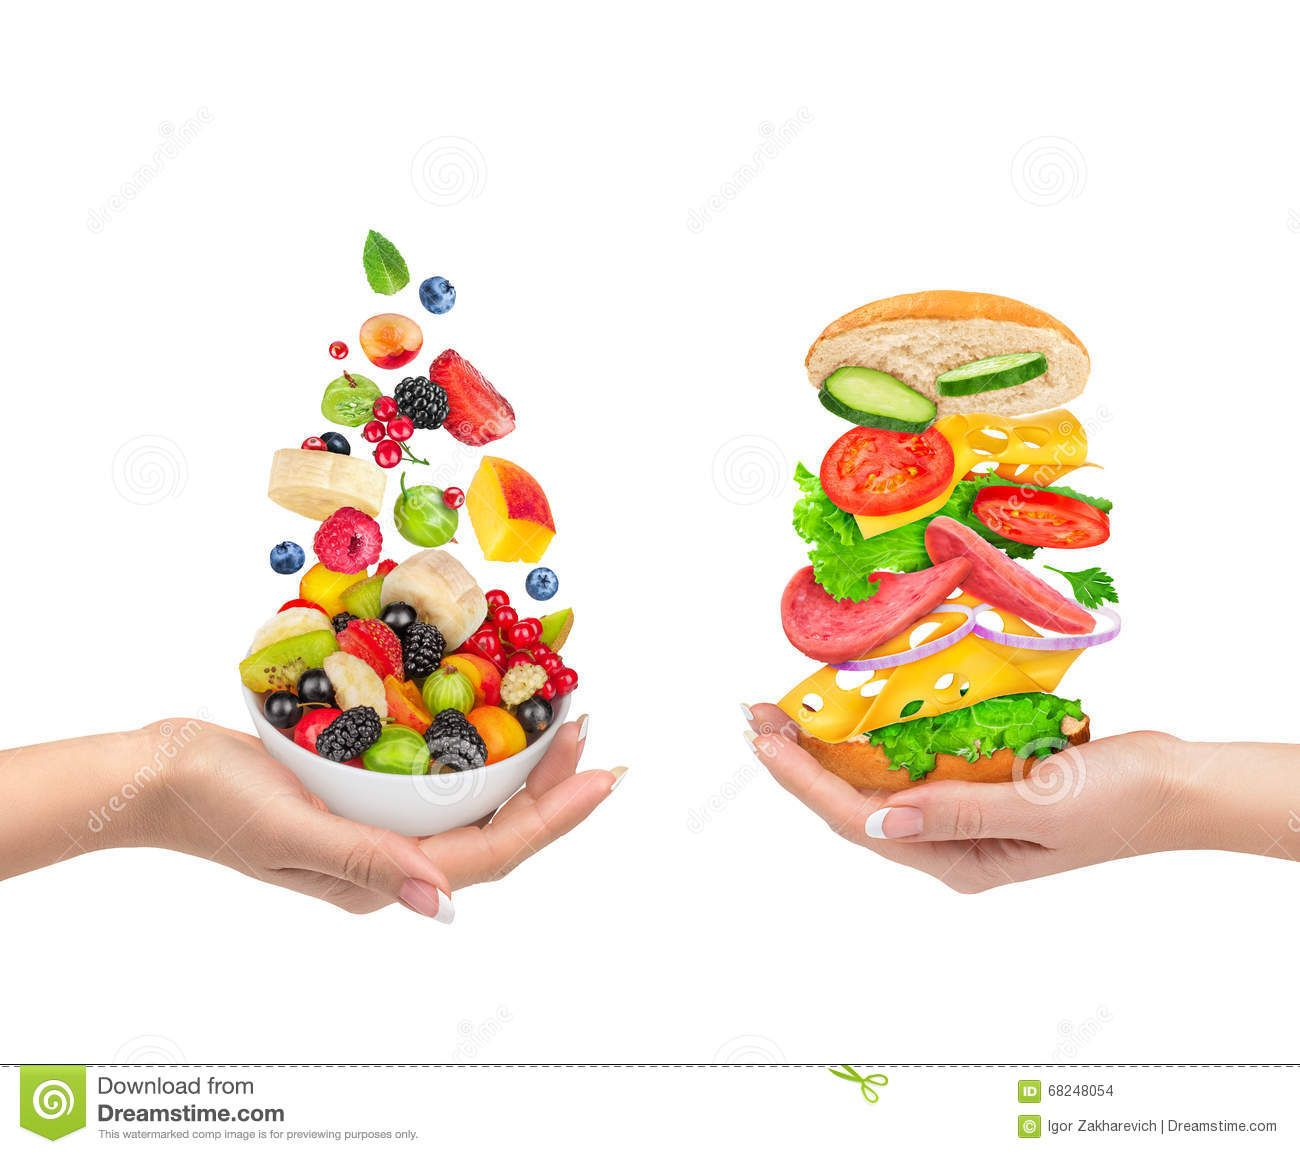 What Are Healthy Food Choices